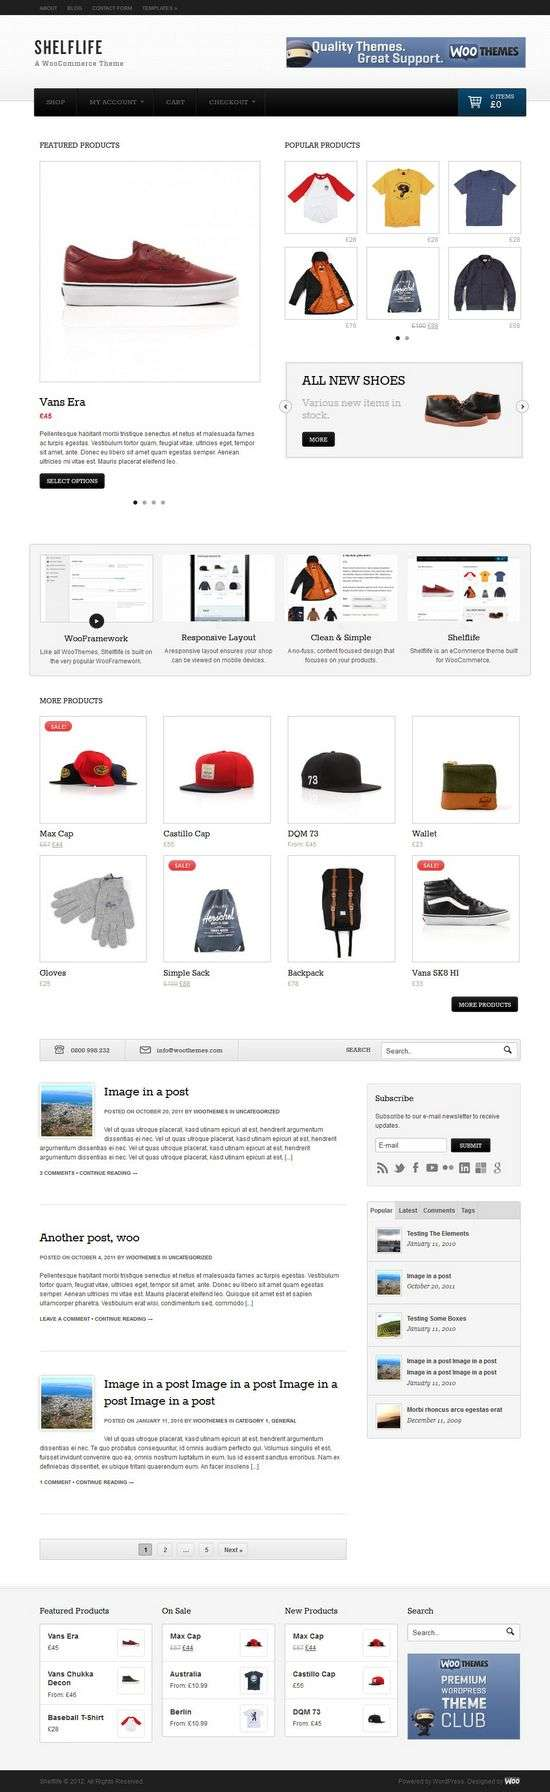 shelflife woothemes avjthemescom 01 - Shelflife WordPress Theme